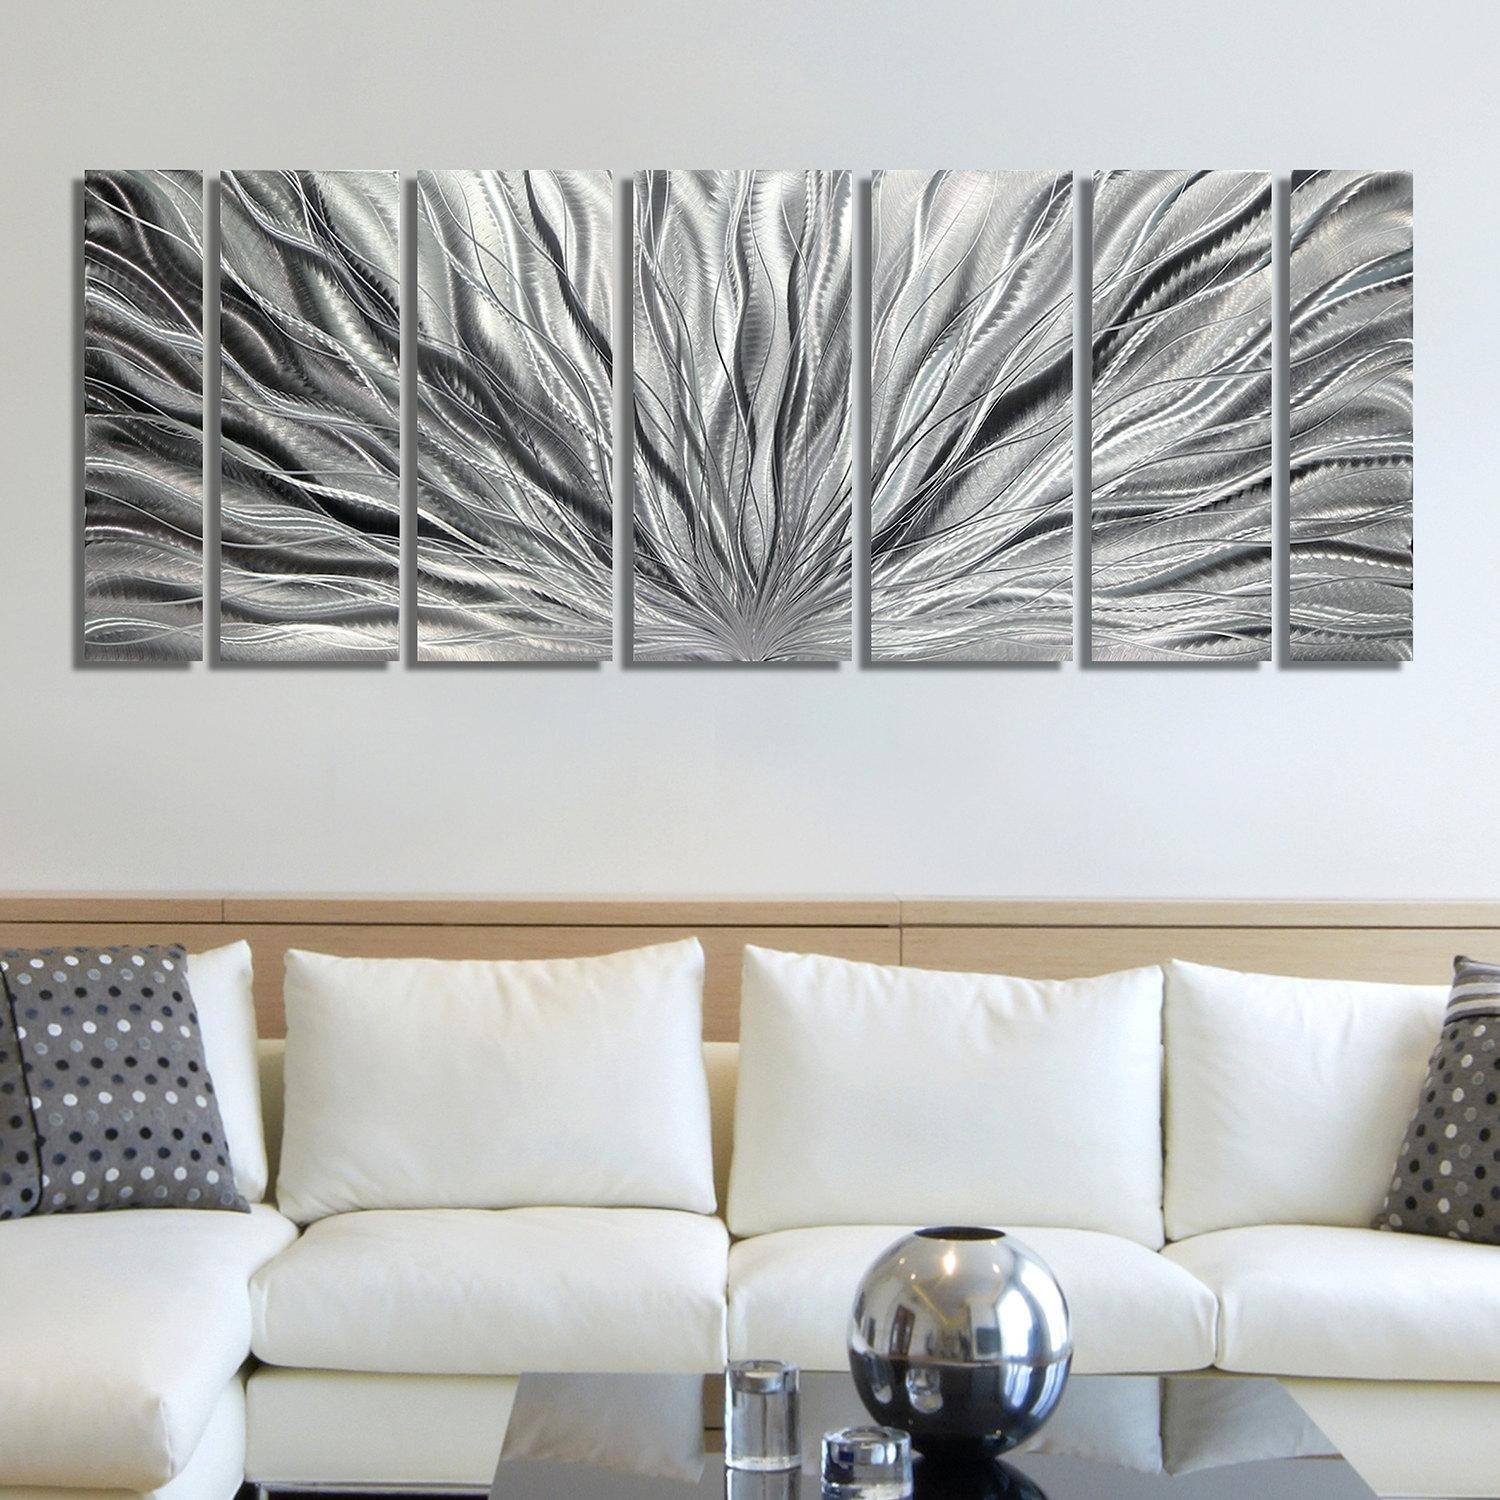 Sale Large Multi Panel Metal Wall Art In All Silver Intended For Large Metal Art (View 12 of 20)